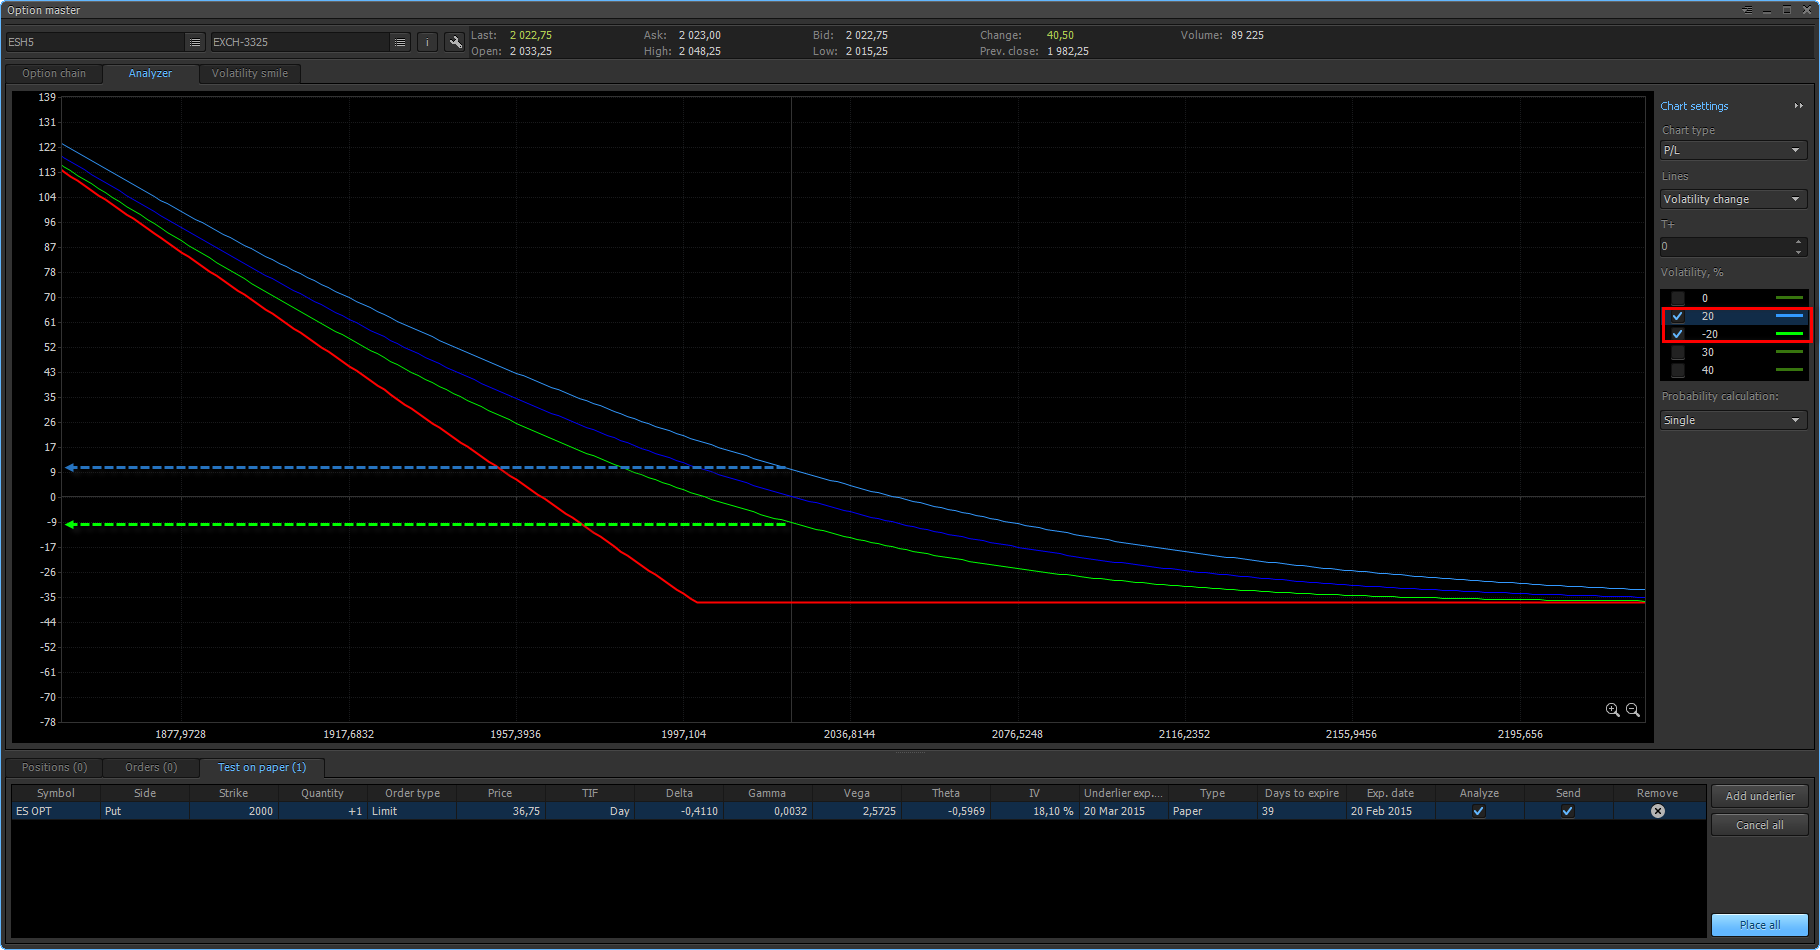 Two additional curves are shown on the position profile, which reflect the theoretical option price with growth in volatility and with fall in volatility.